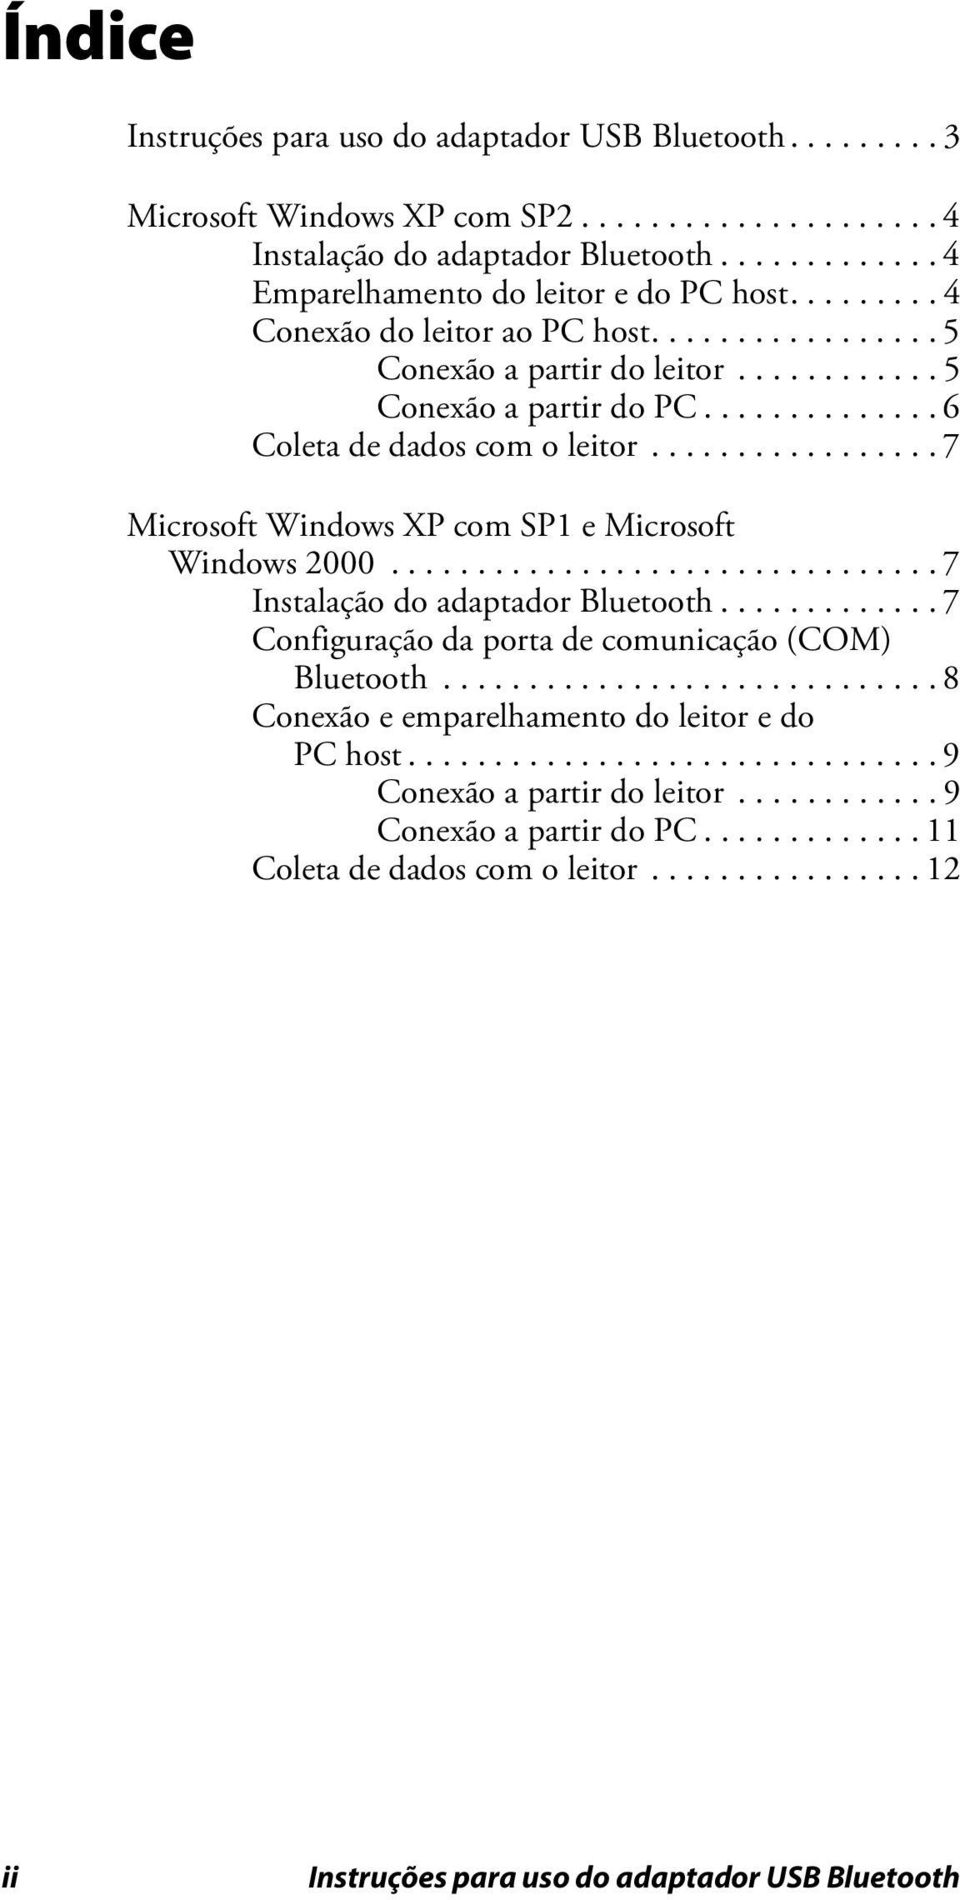 ................ 7 Microsoft Windows XP com SP1 e Microsoft Windows 2000................................ 7 Instalação do adaptador Bluetooth............. 7 Configuração da porta de comunicação (COM) Bluetooth.